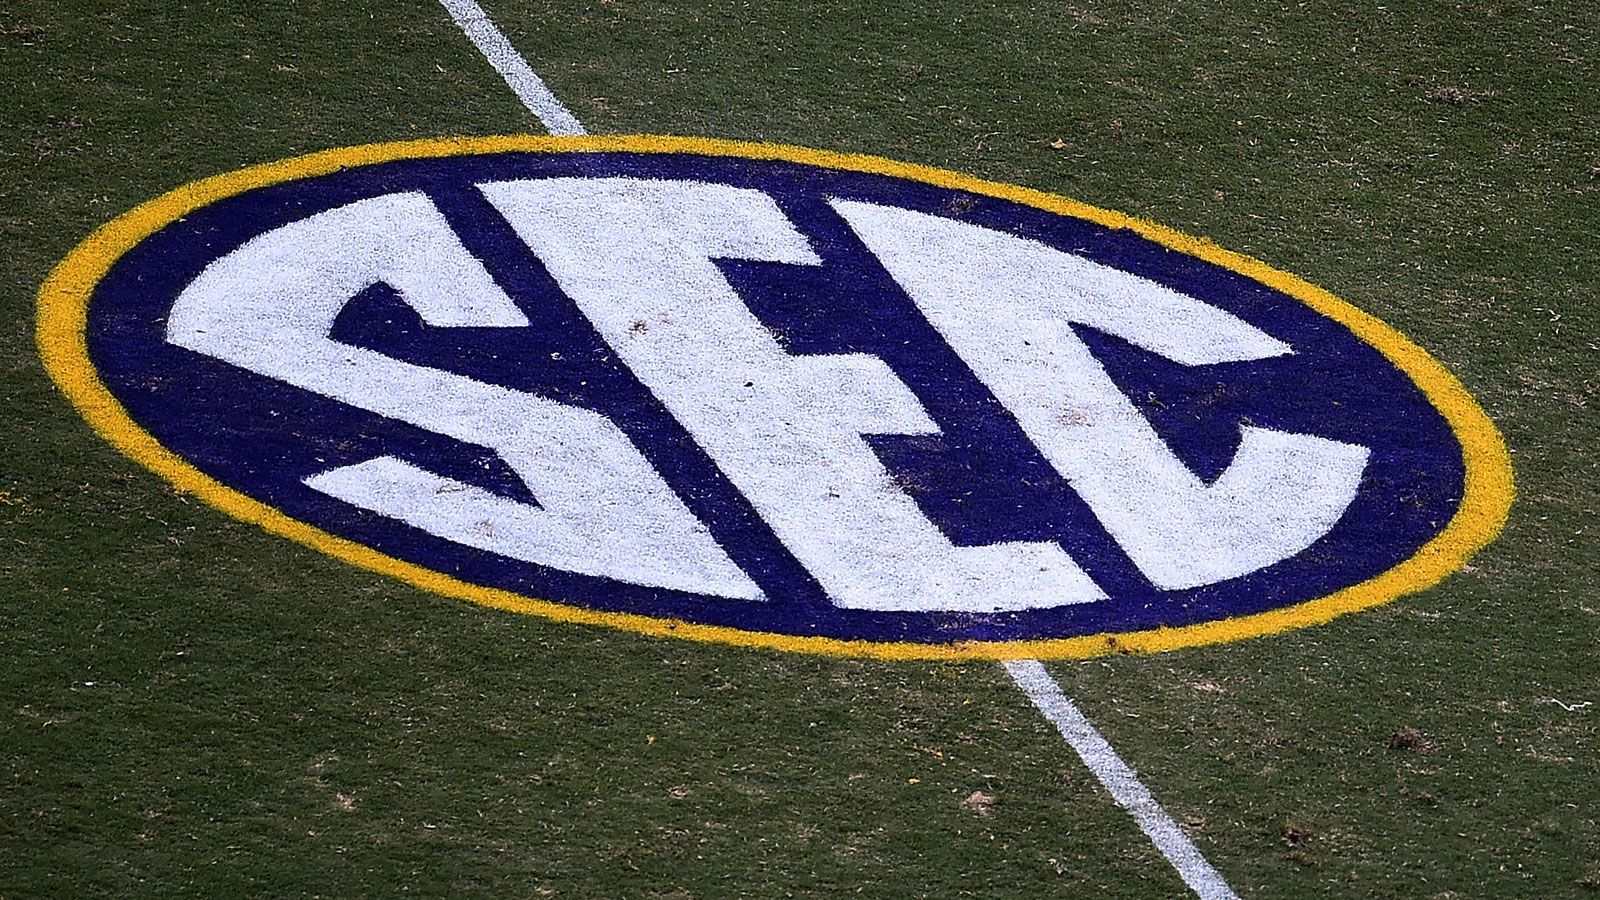 Four from SEC selected for 2017 Senior CLASS Award